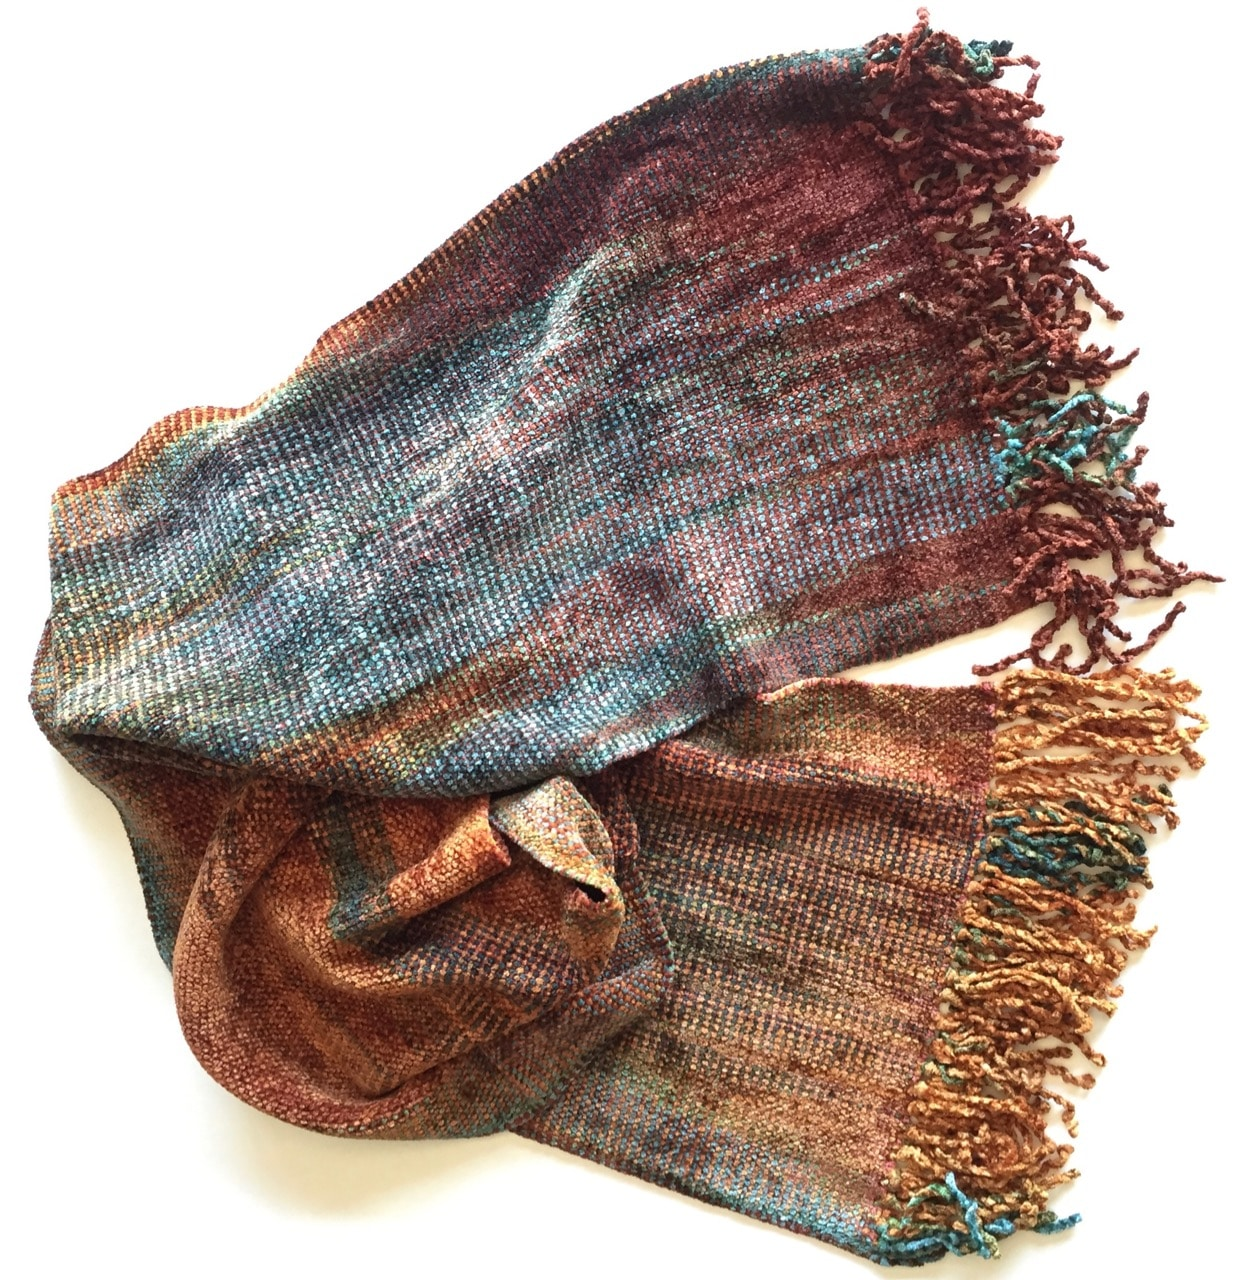 Gold, Burgundy, Black, White, Gray - Bamboo Chenille Handwoven Scarf - Space-Dyed 8